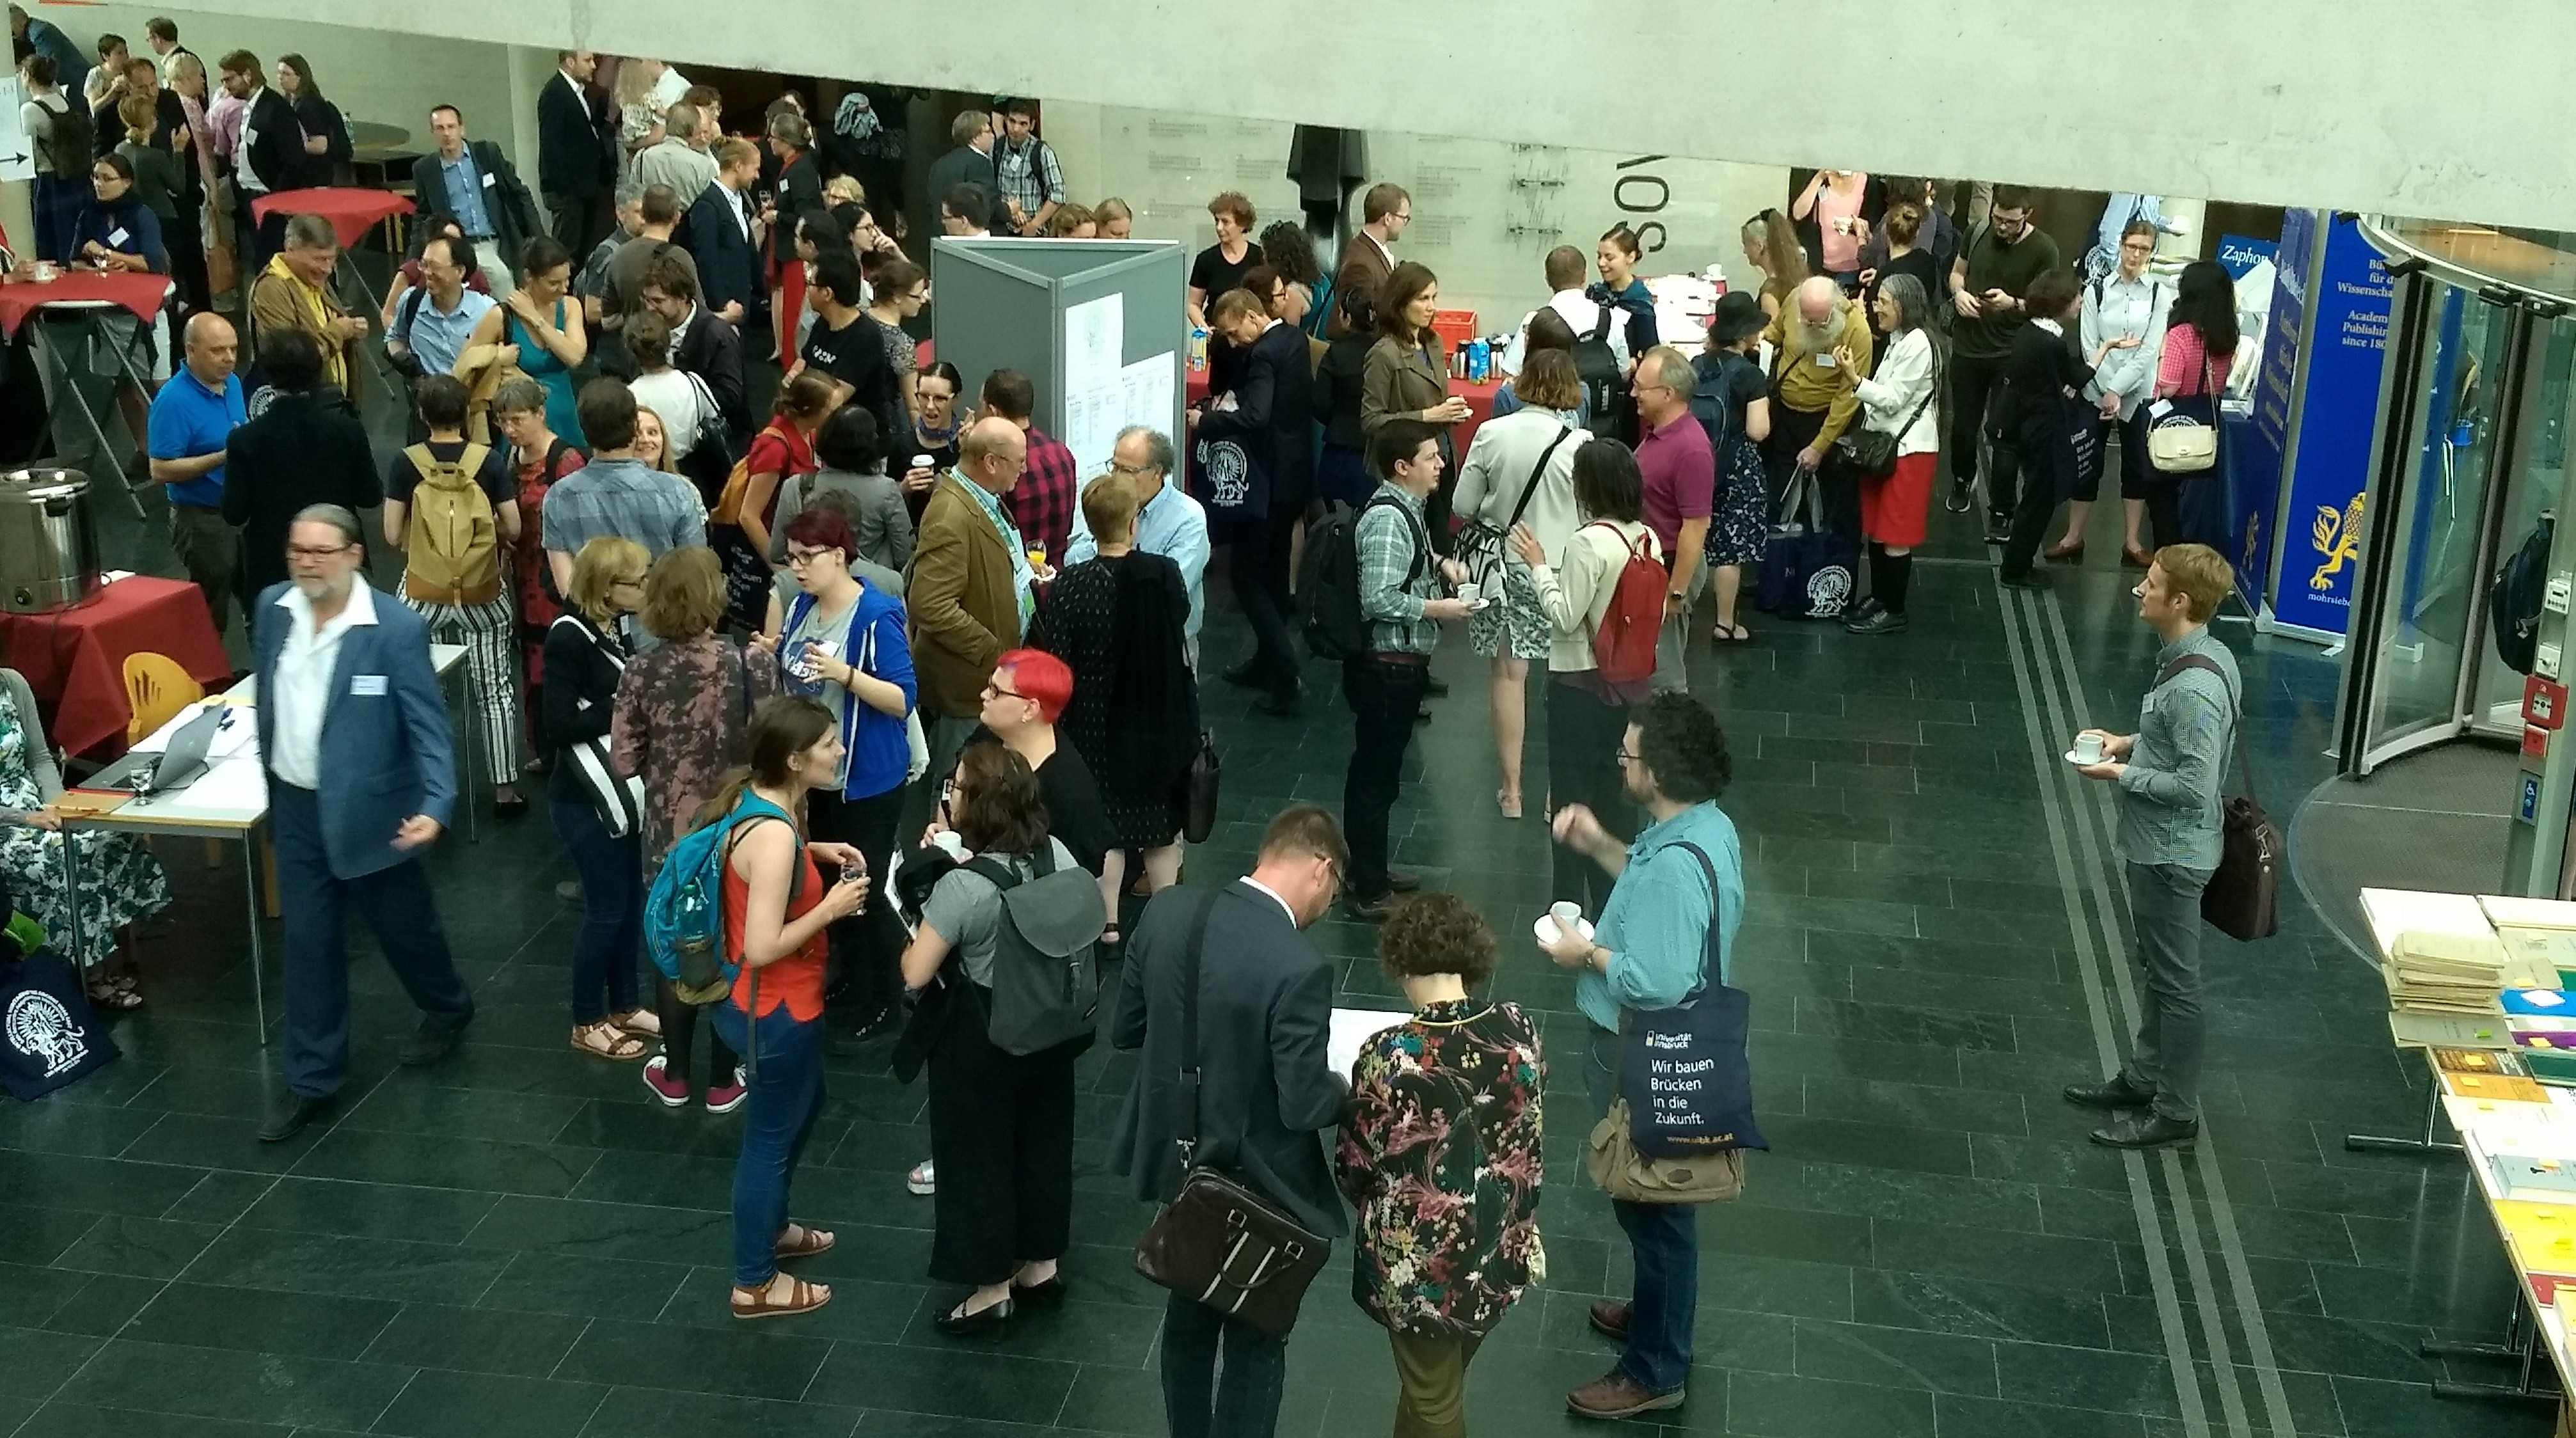 A crowd at an academic conference in a lobby with a stone floor, concrete walls, and several tables of books, snacks, and registration papers